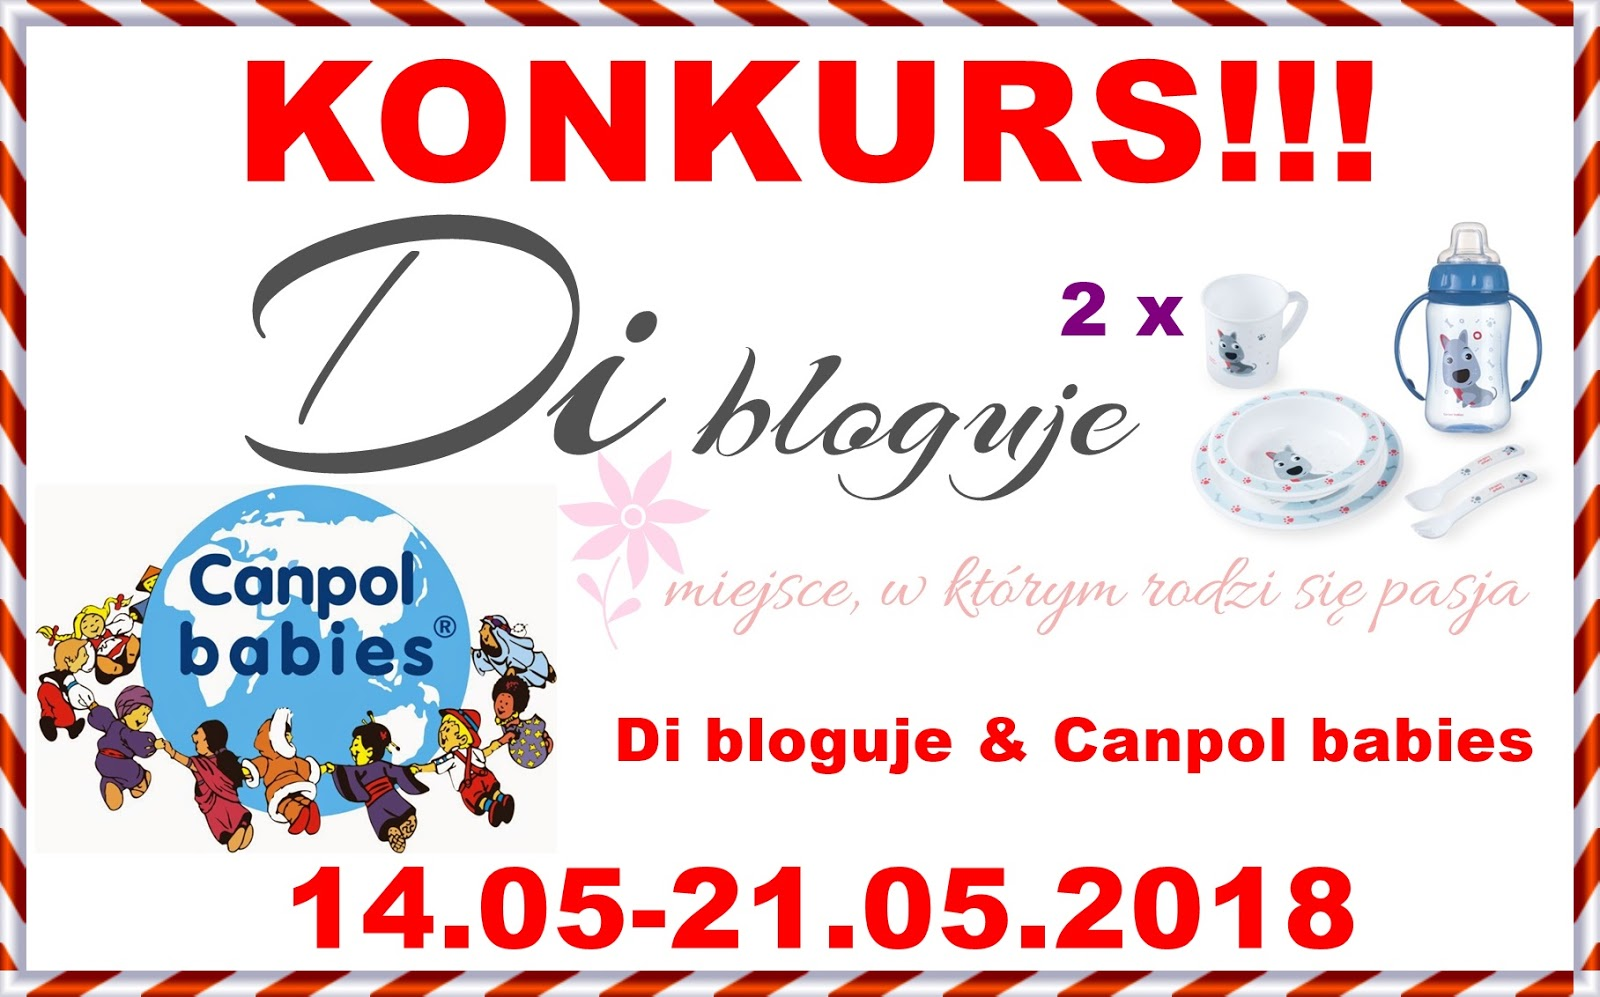 Konkurs - Di bloguje & Canpol babies - do wygrania 2 zestawy CUTE ANIMALS